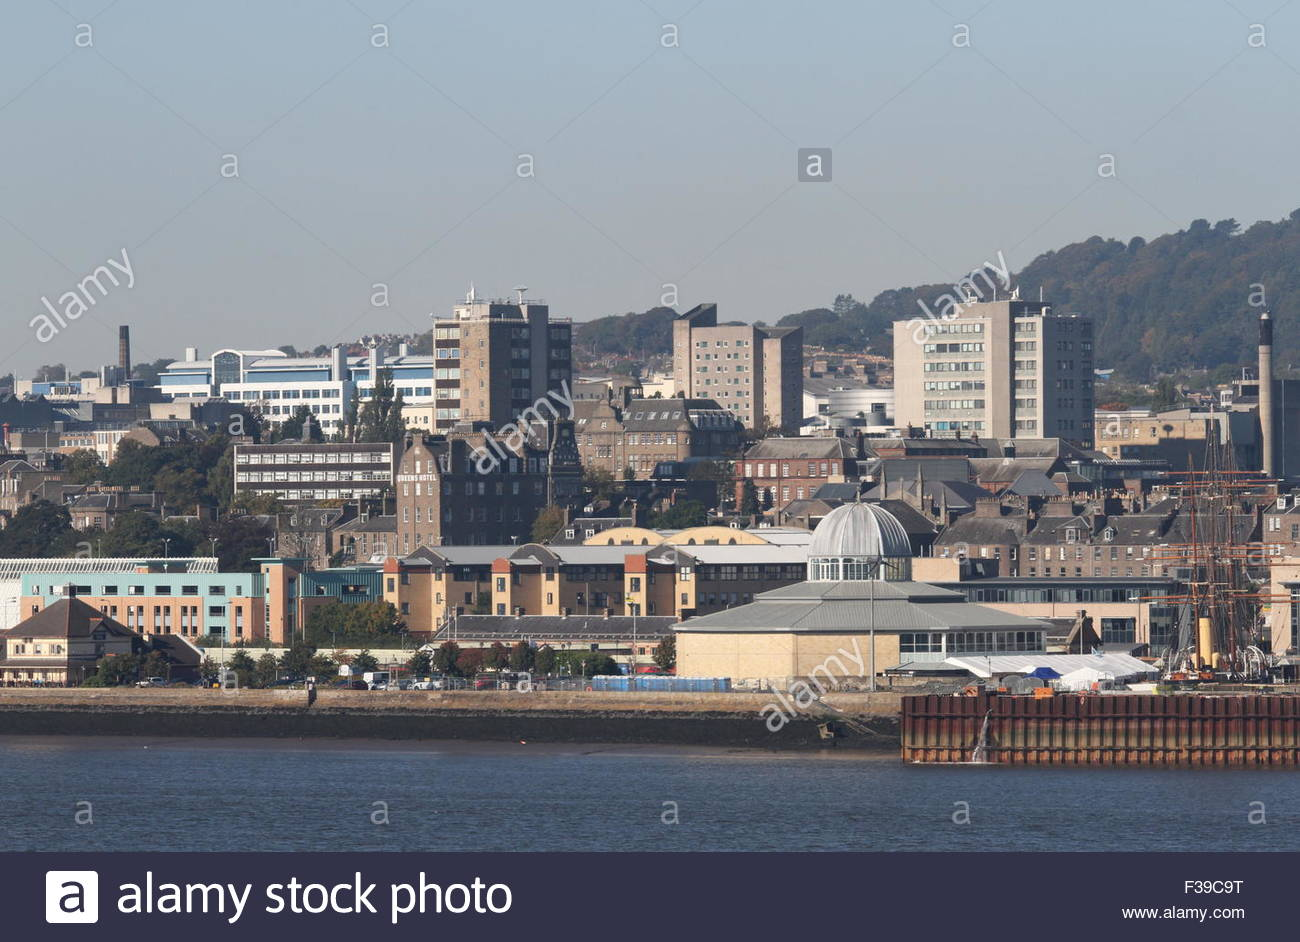 Discovery Point and University of Dundee Scotland - Stock Image